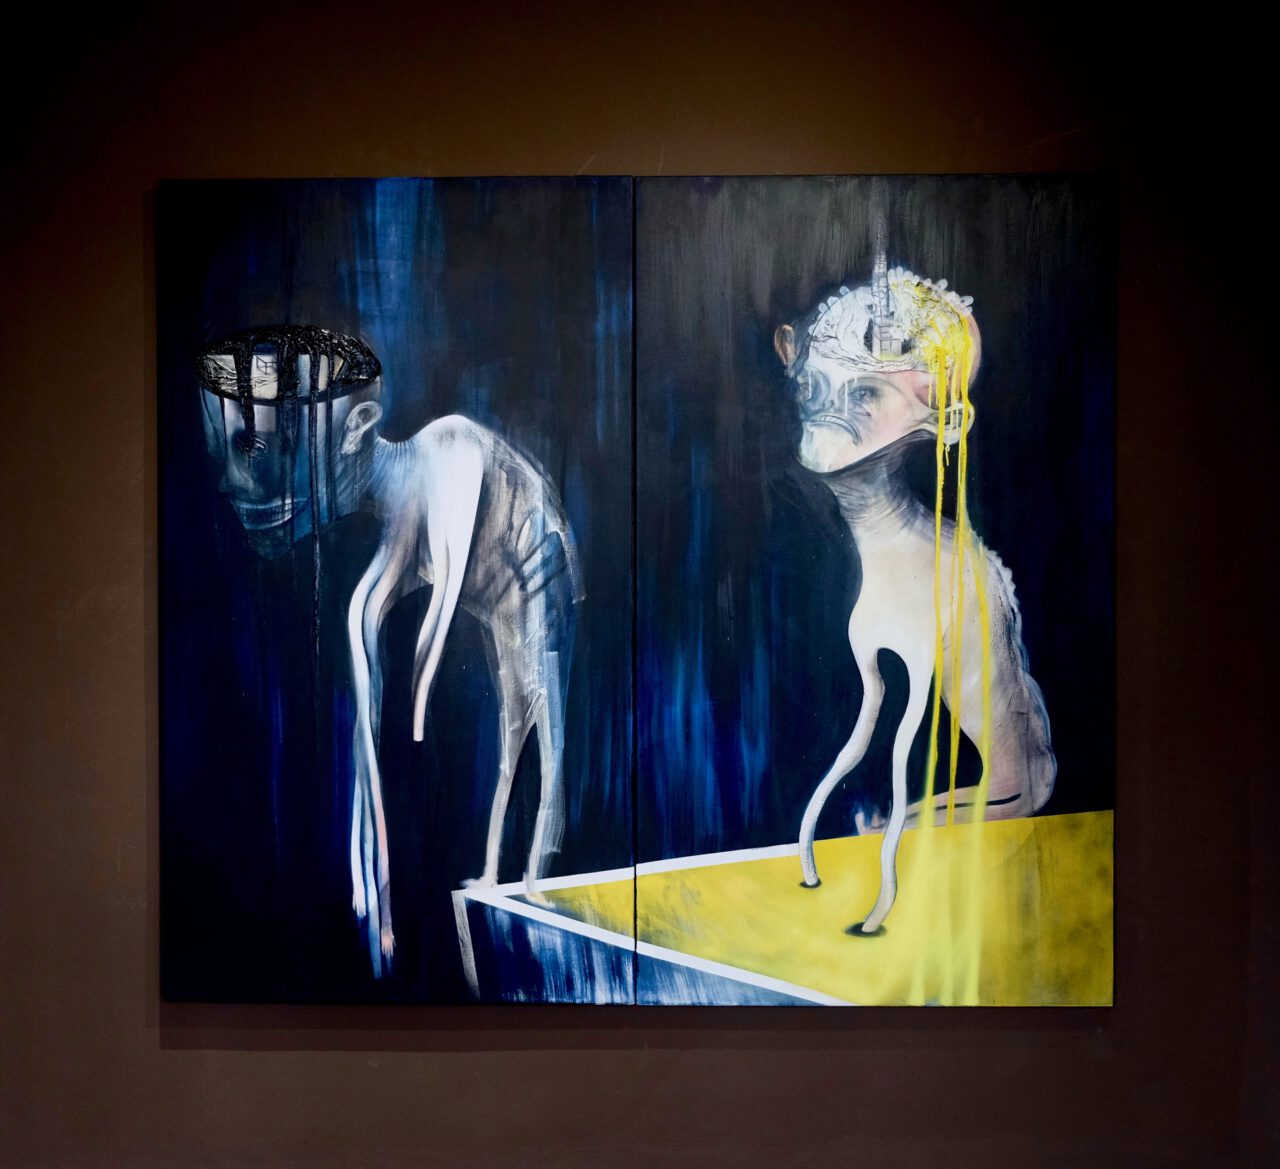 THE ABYSS by Anna Kolod (exhibition view)